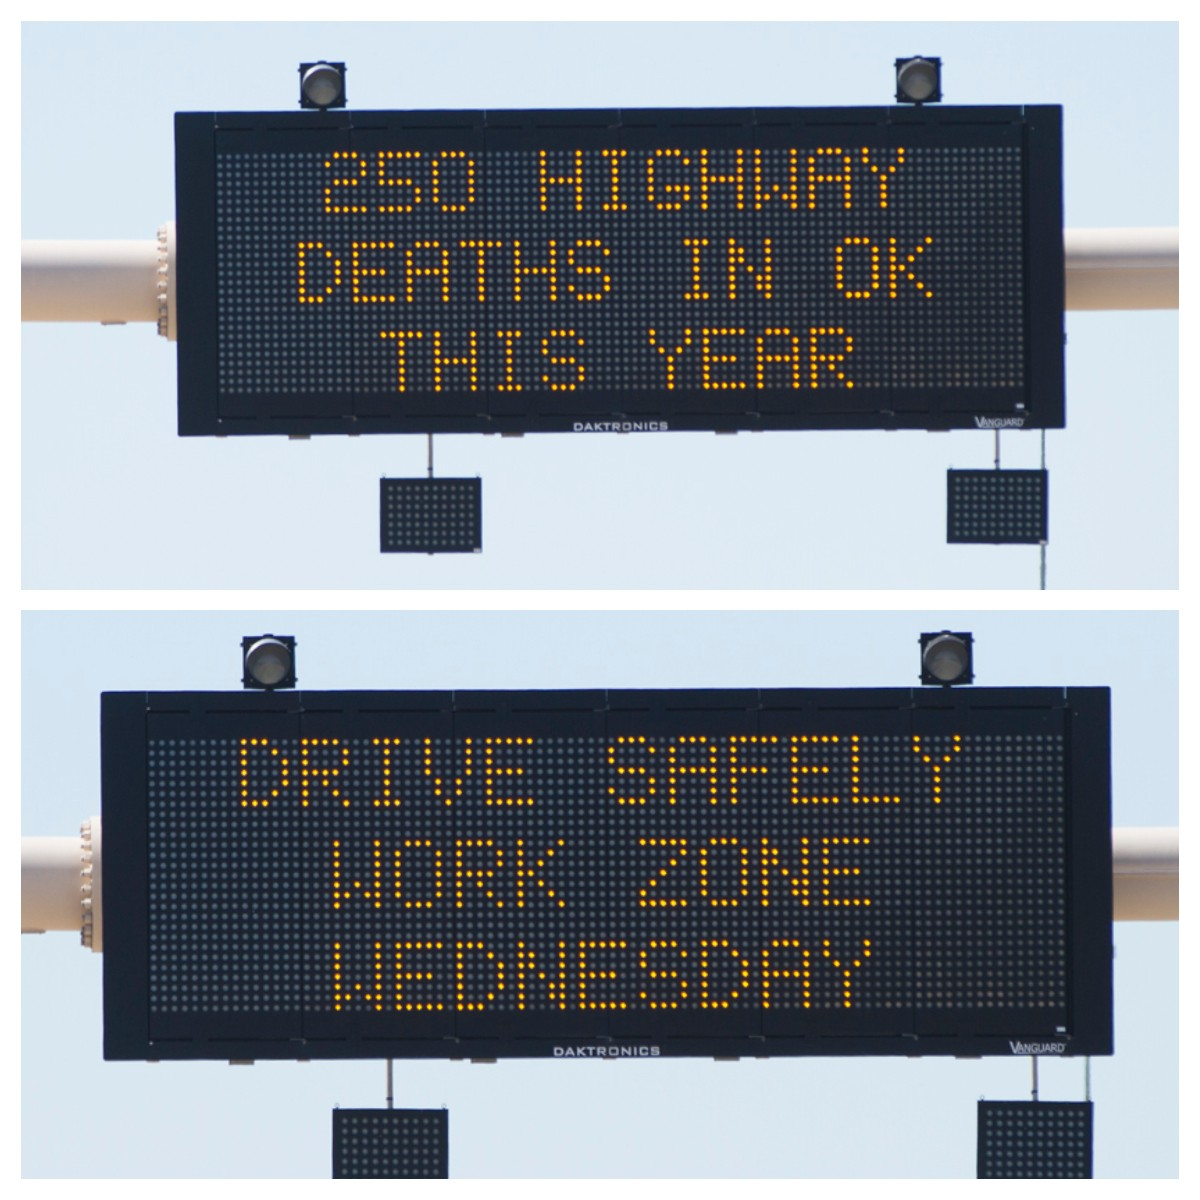 /content/dam/ok/en/odot/images/message-signs/09.28.16.jpg